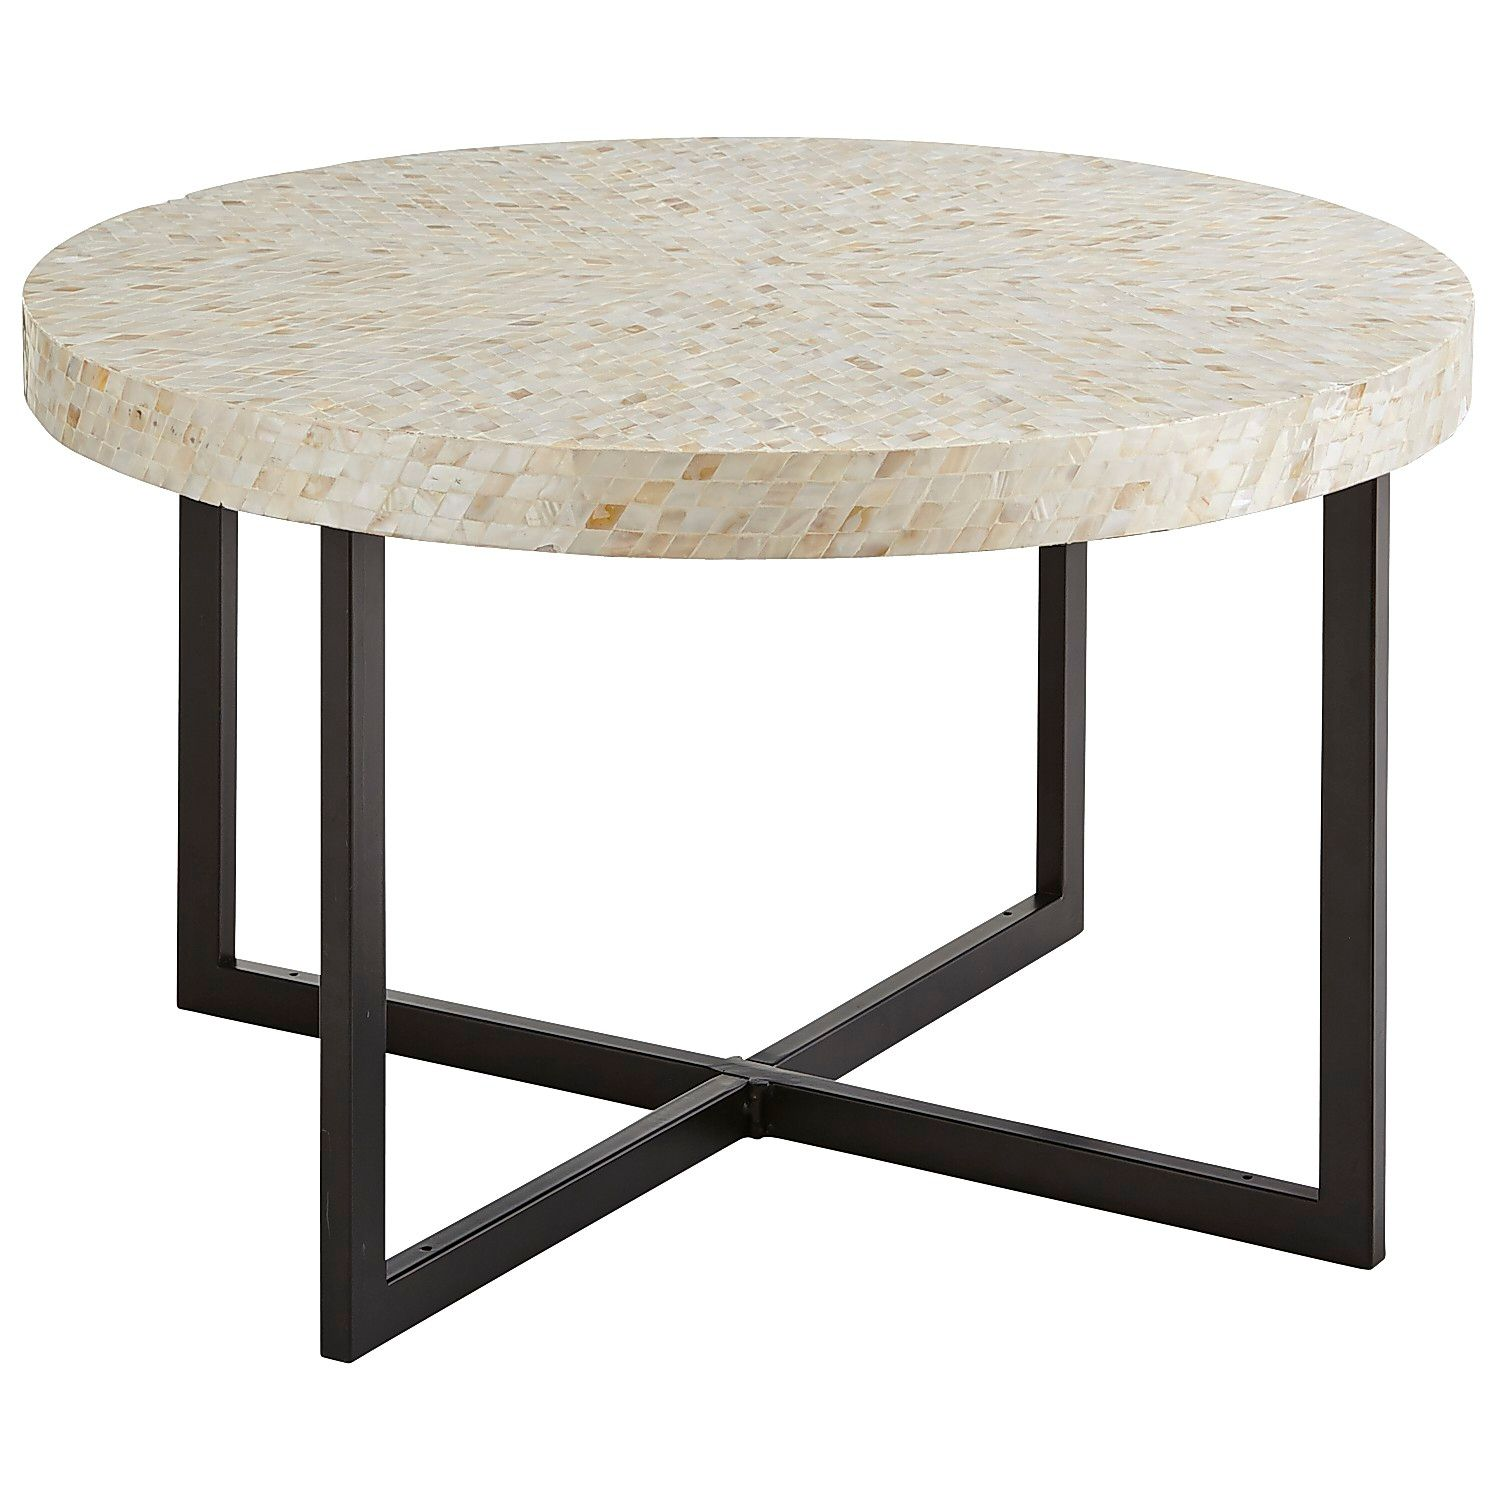 mother pearl coffee table pier imports small accent tables one best for living rooms outdoor top decoration pieces drawing room buffet sideboard essentials mirror wooden with